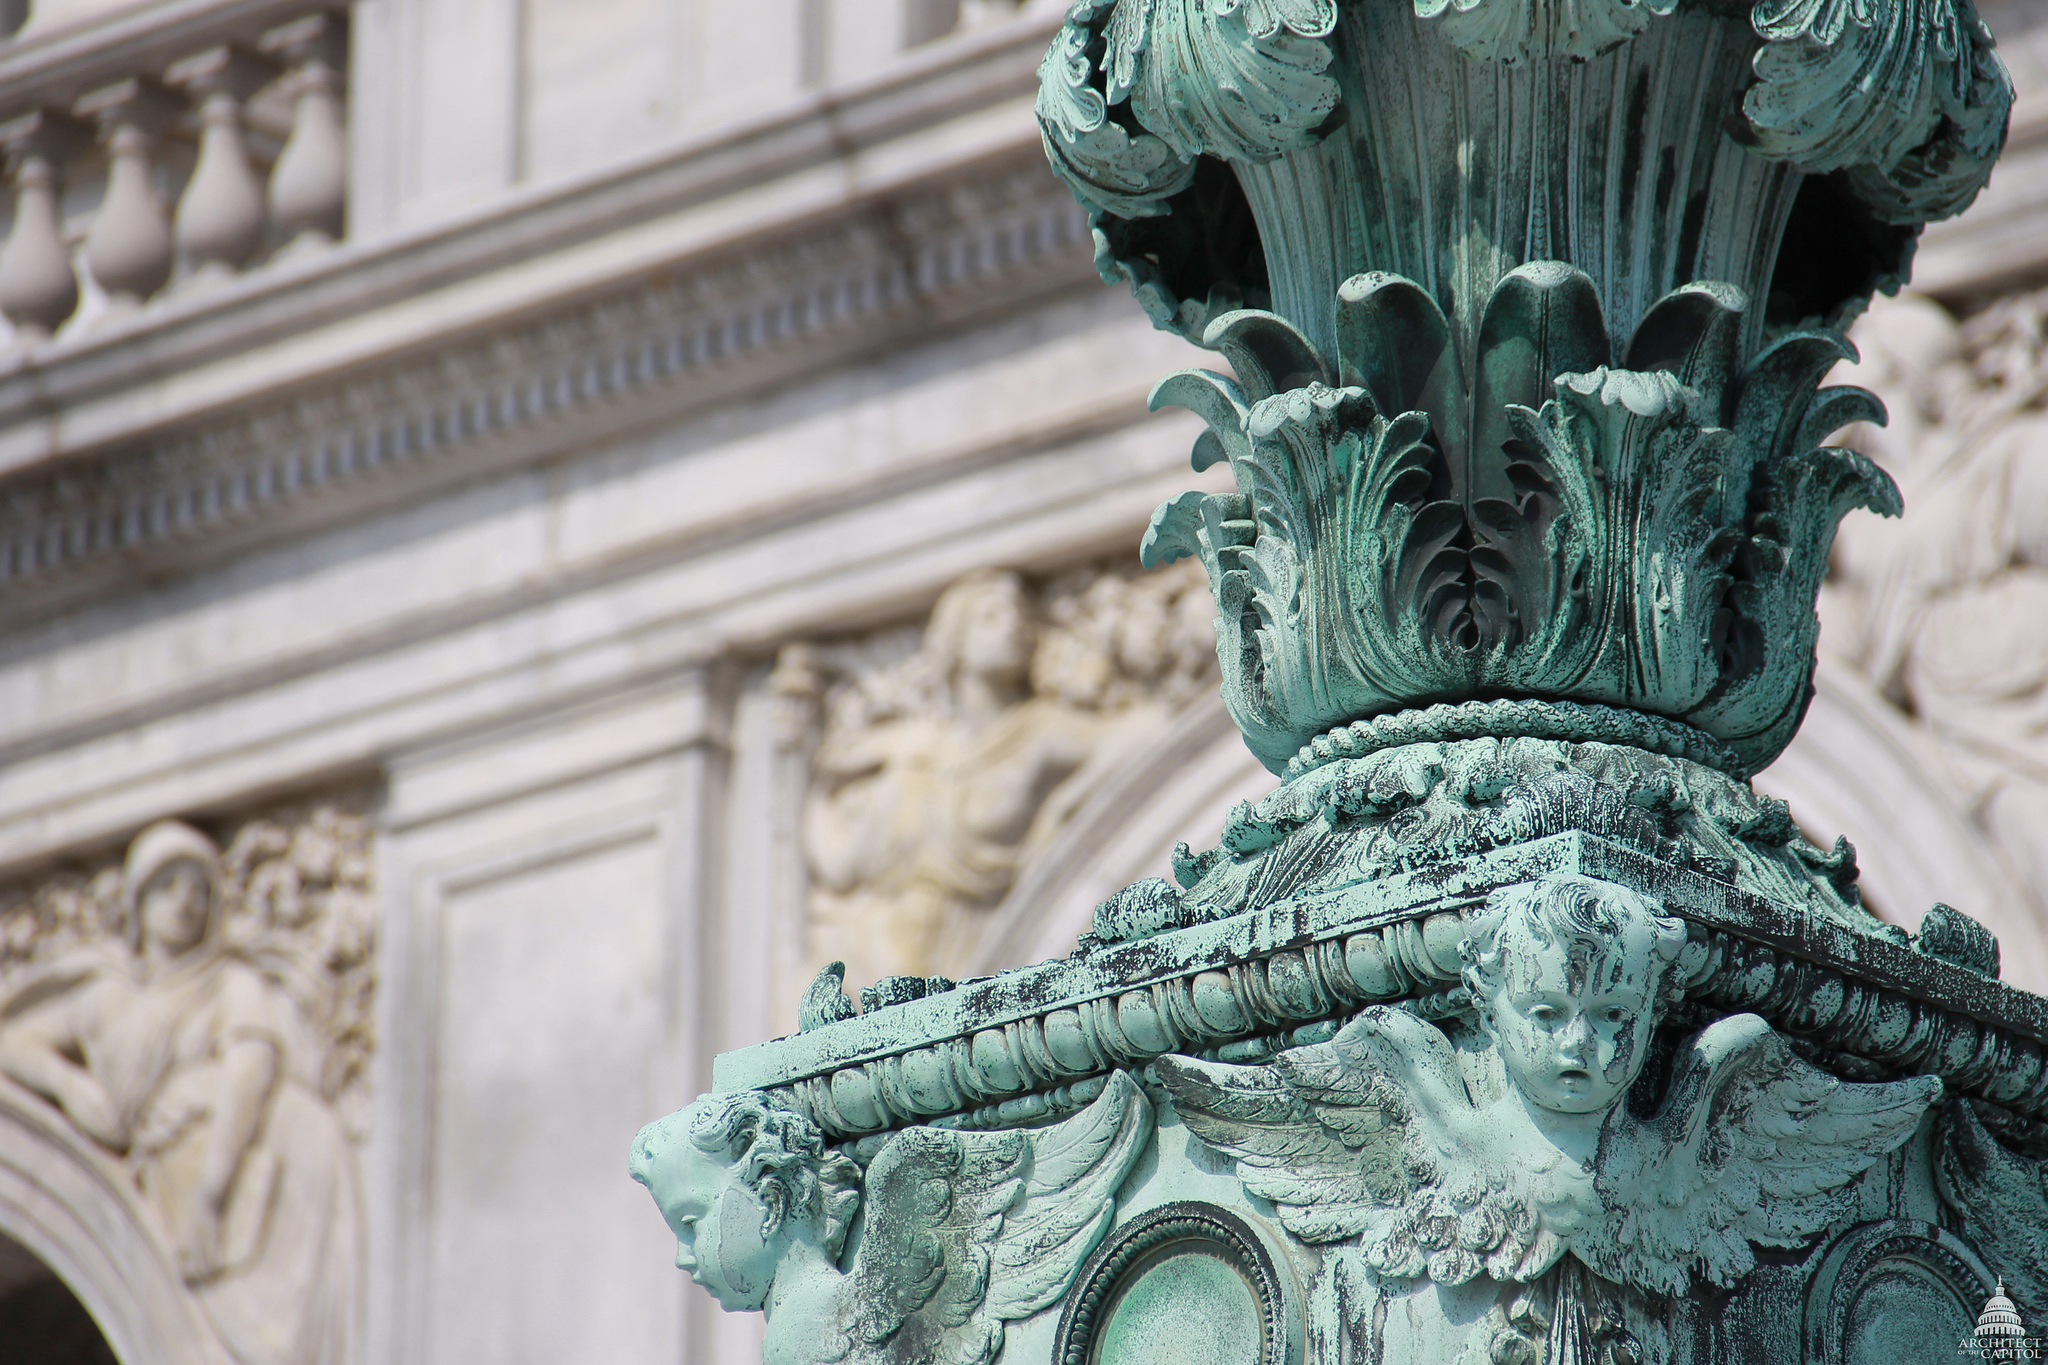 Tax Legislation - Details of Lantern in front of the Library of Congress Thomas Jefferson Building